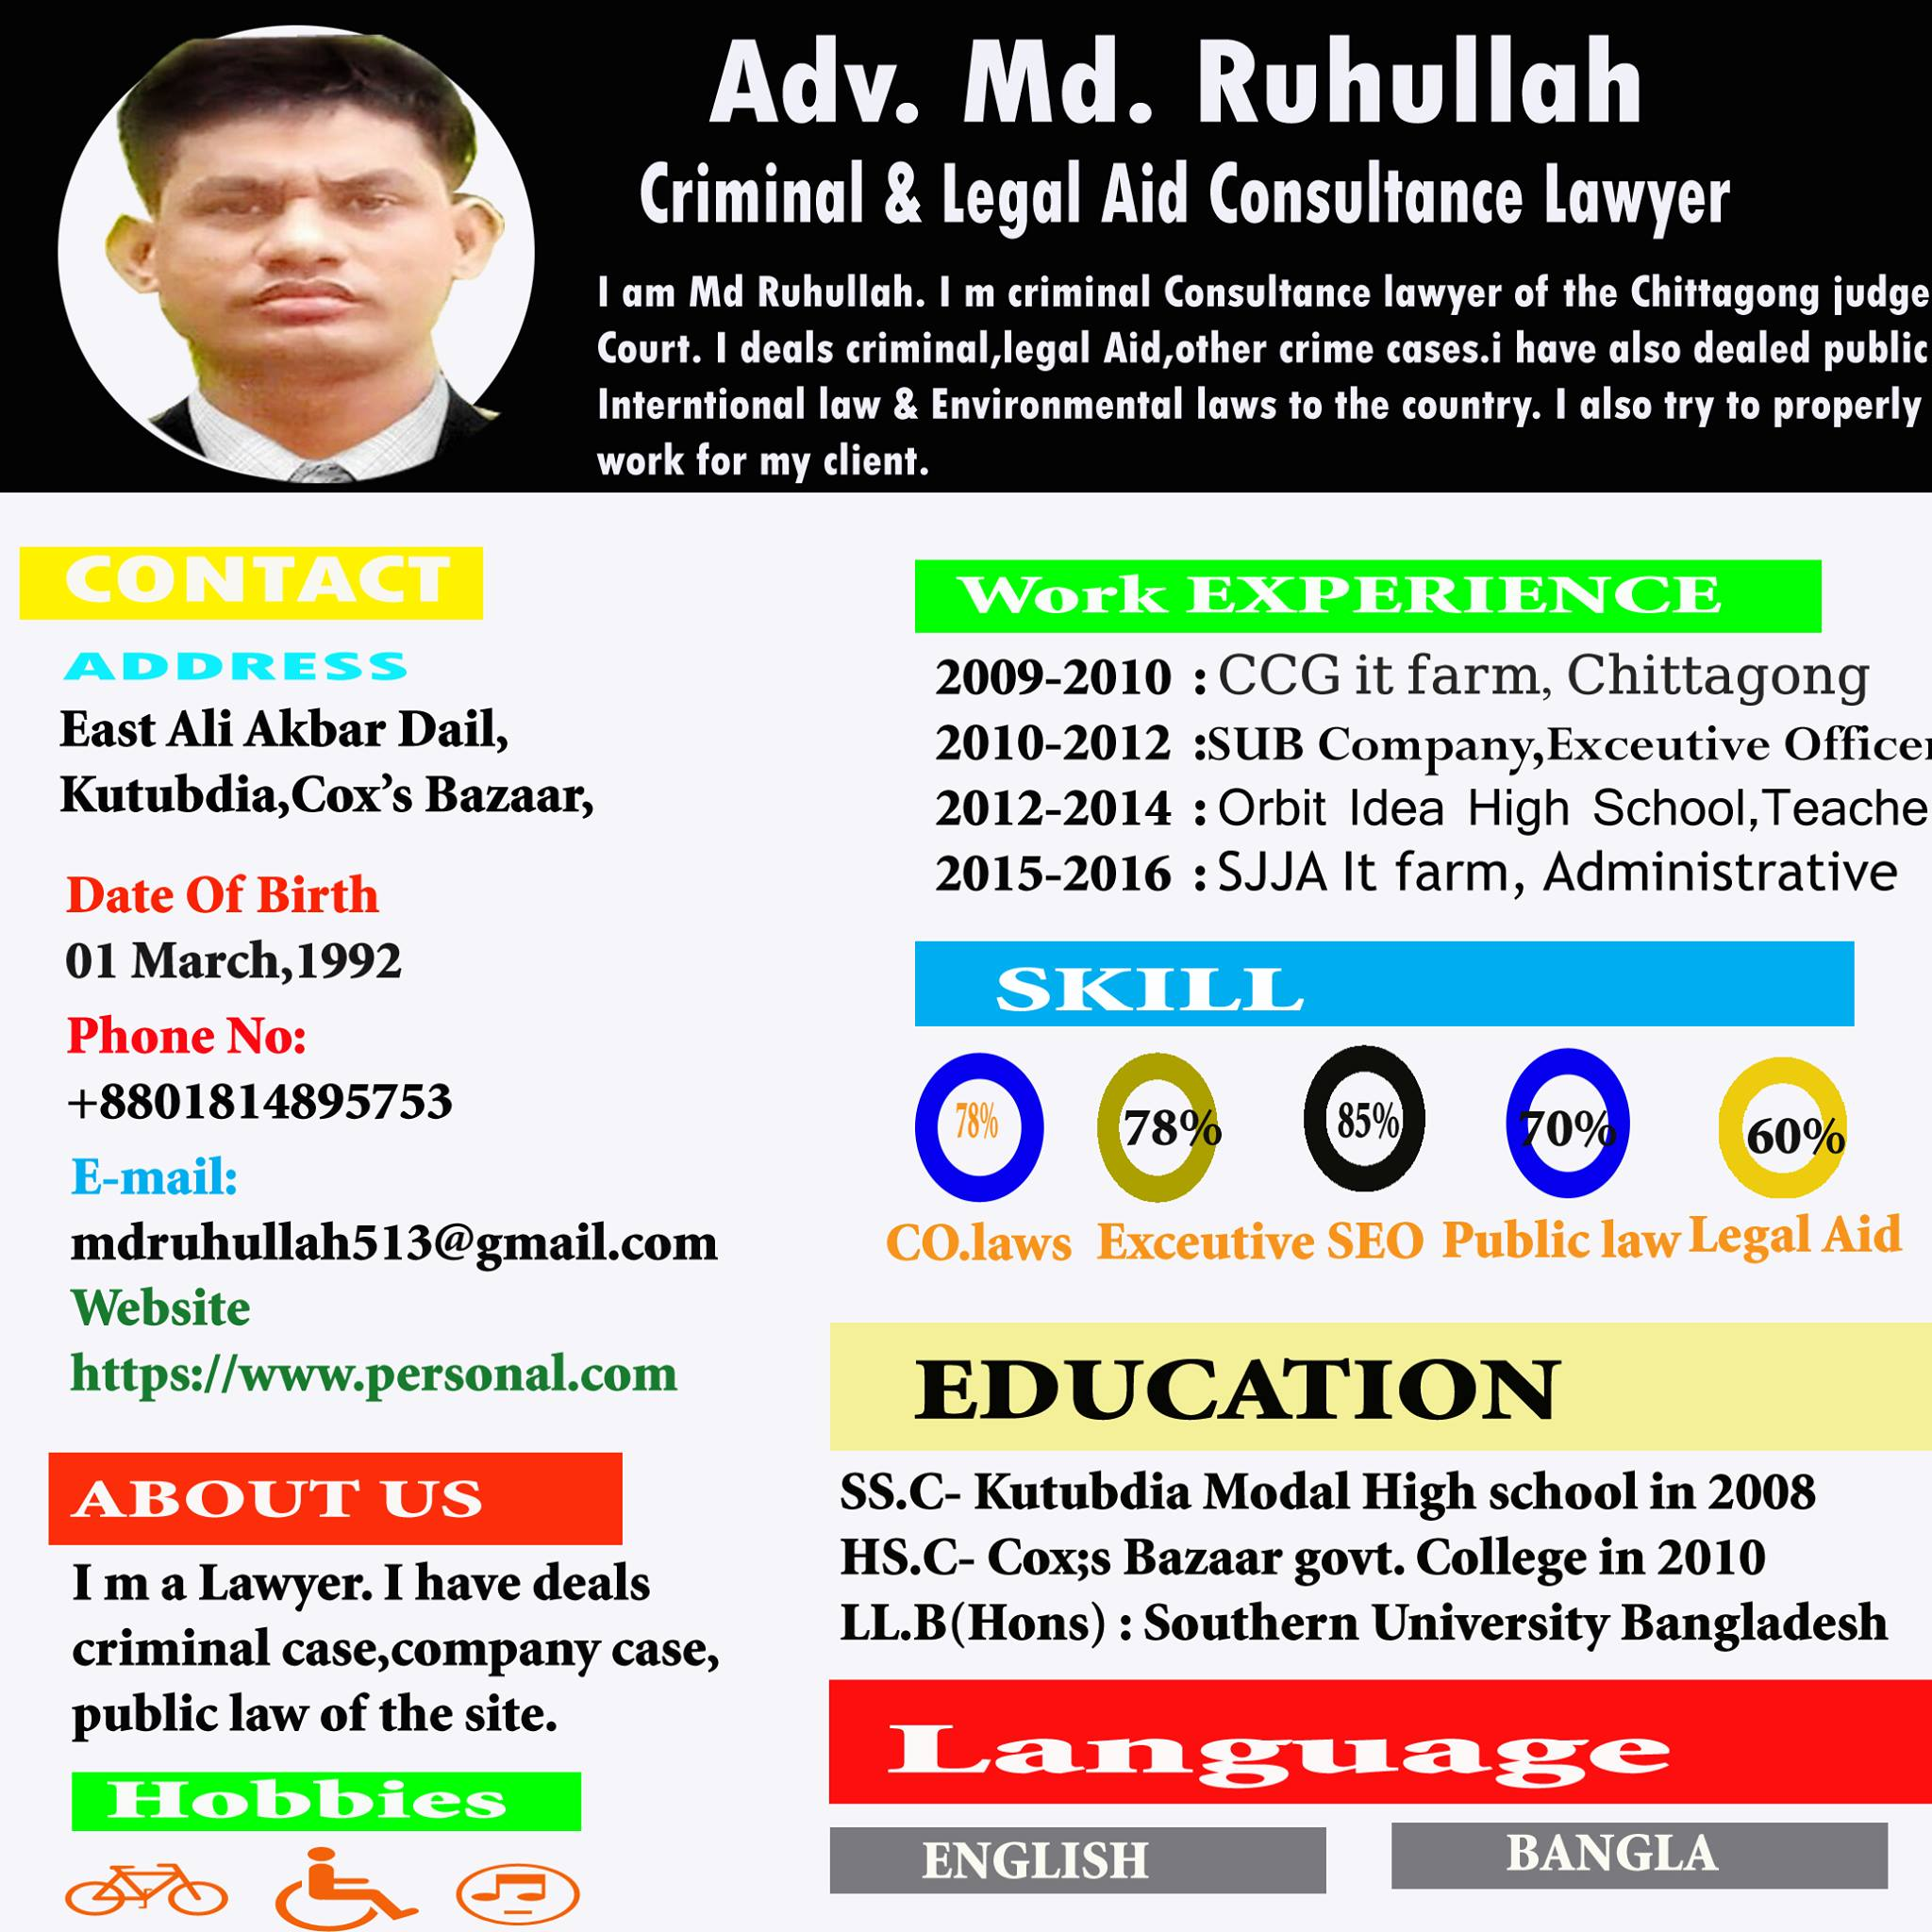 I will Create  Both sides Business card And Professional Resume within 24 Hours.